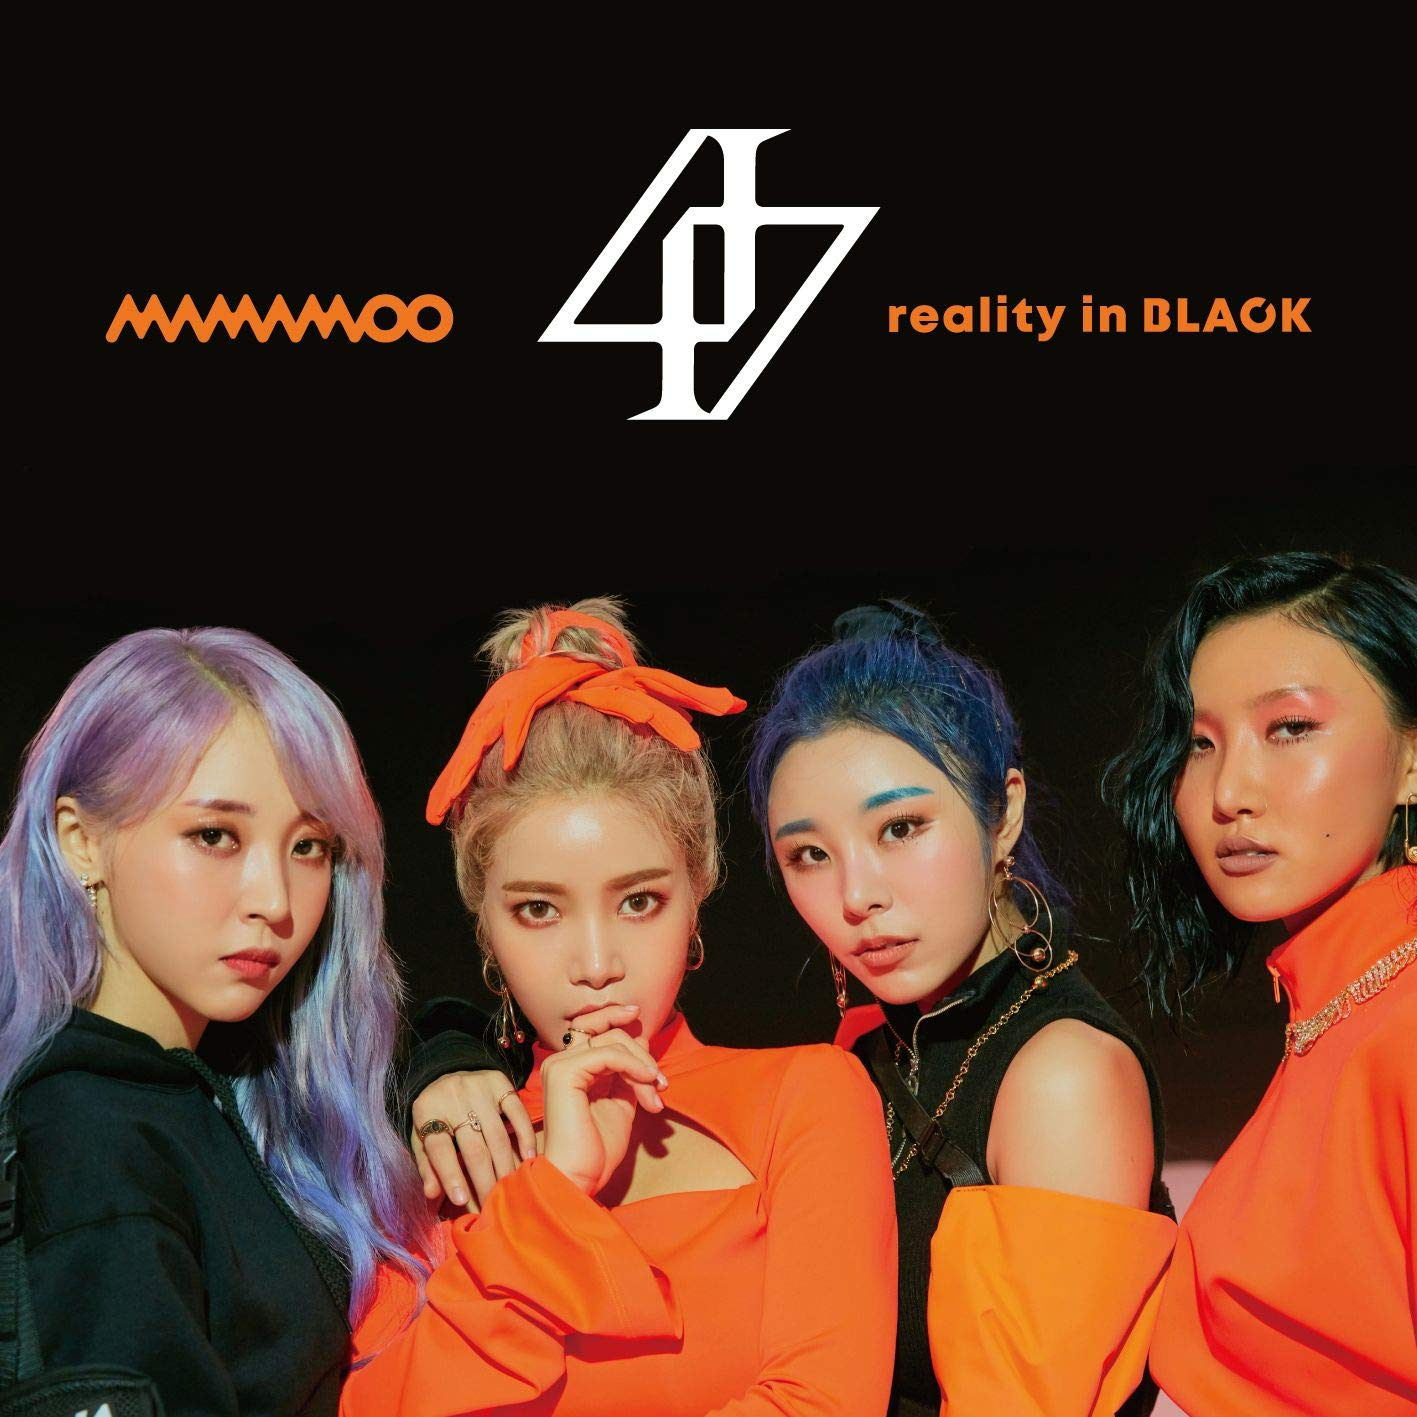 reality in BLACK -Japanese Edition- (Type A) [CD+DVD]